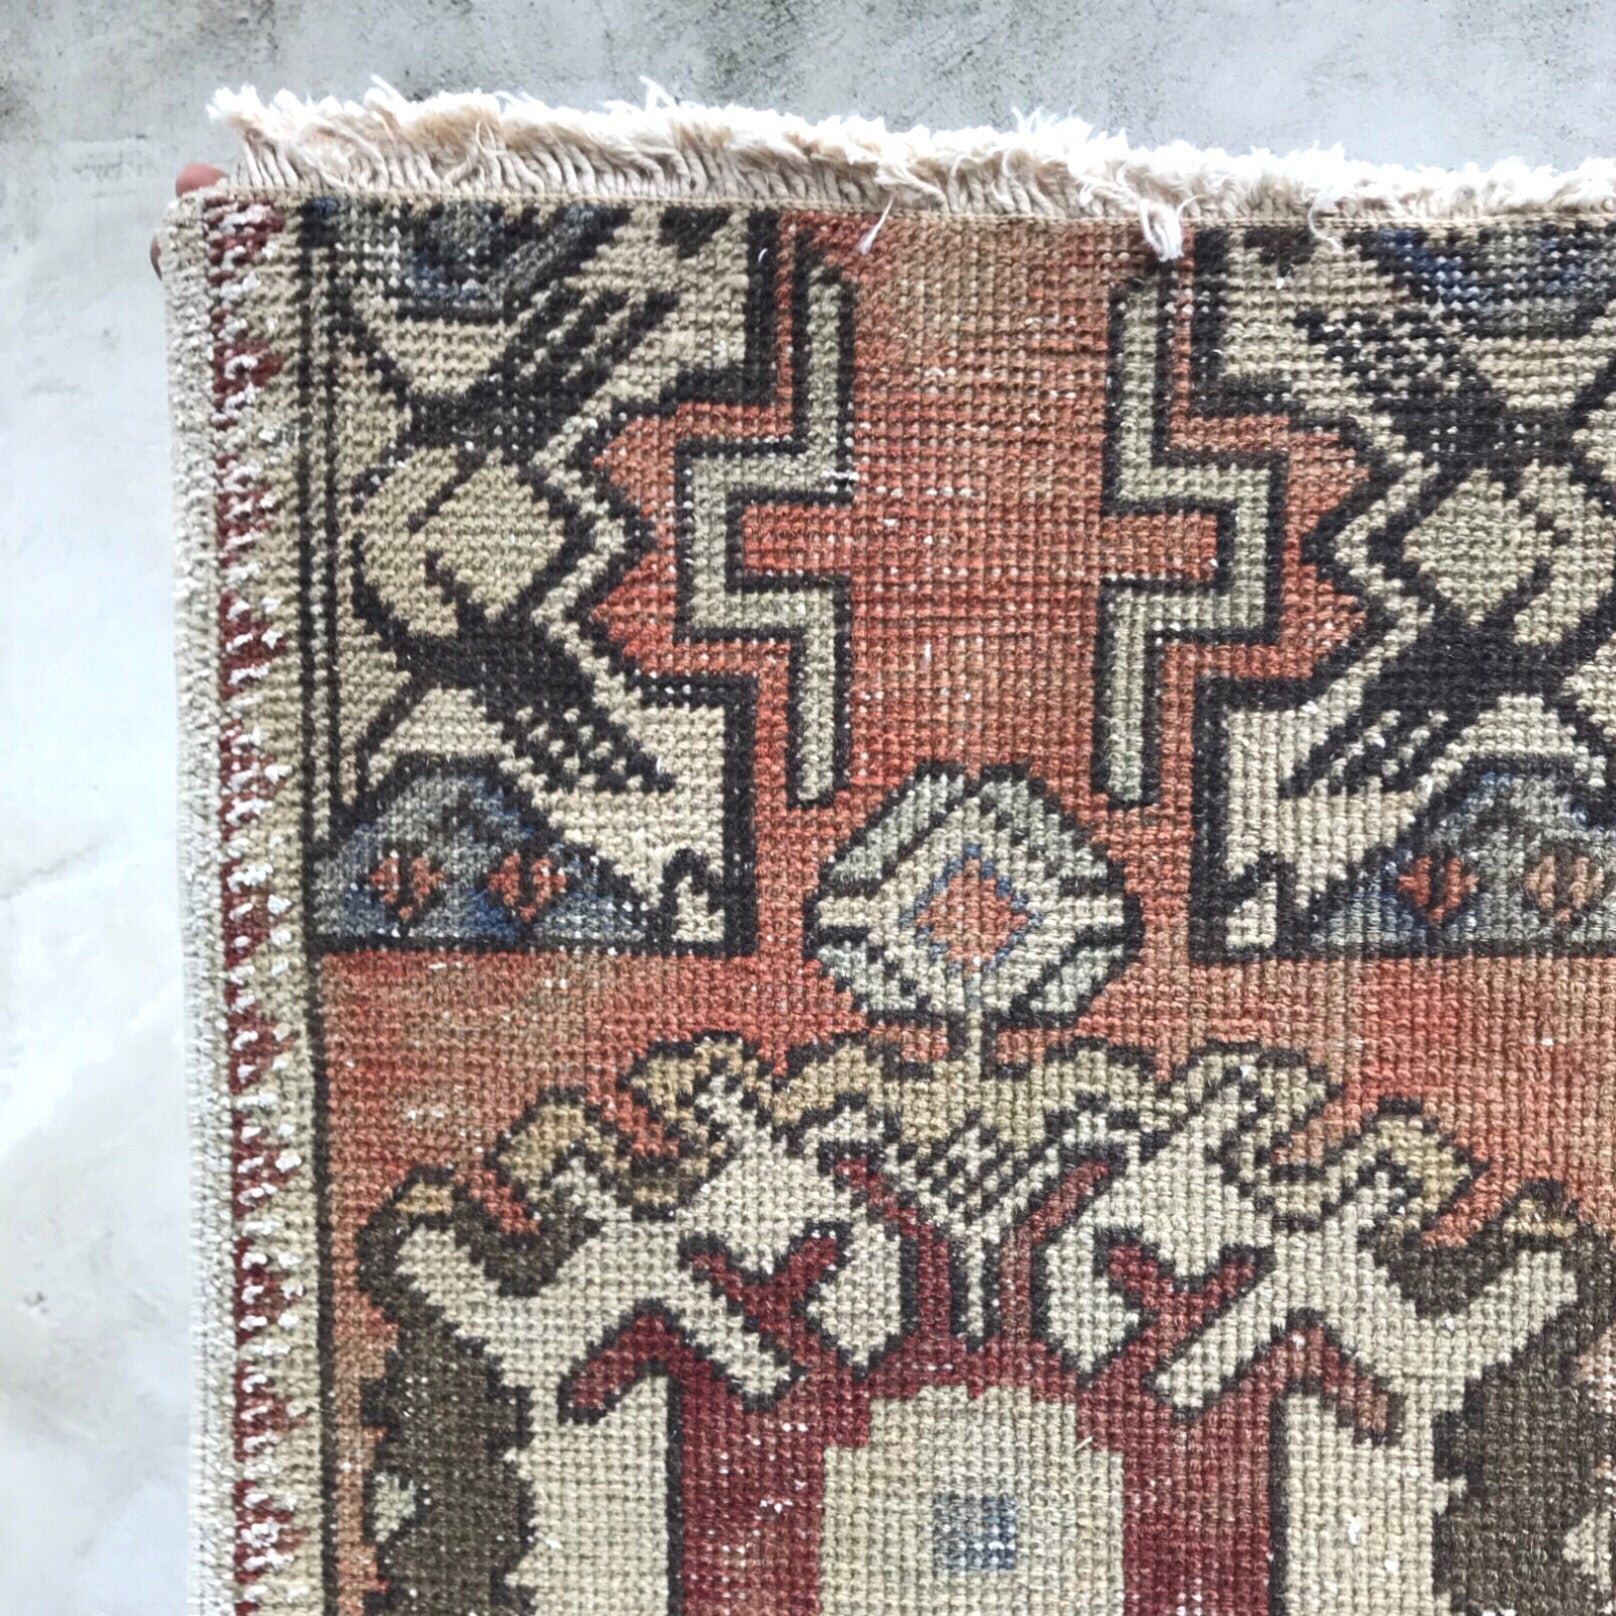 247 Small Handwoven Vintage 1'6x2'4